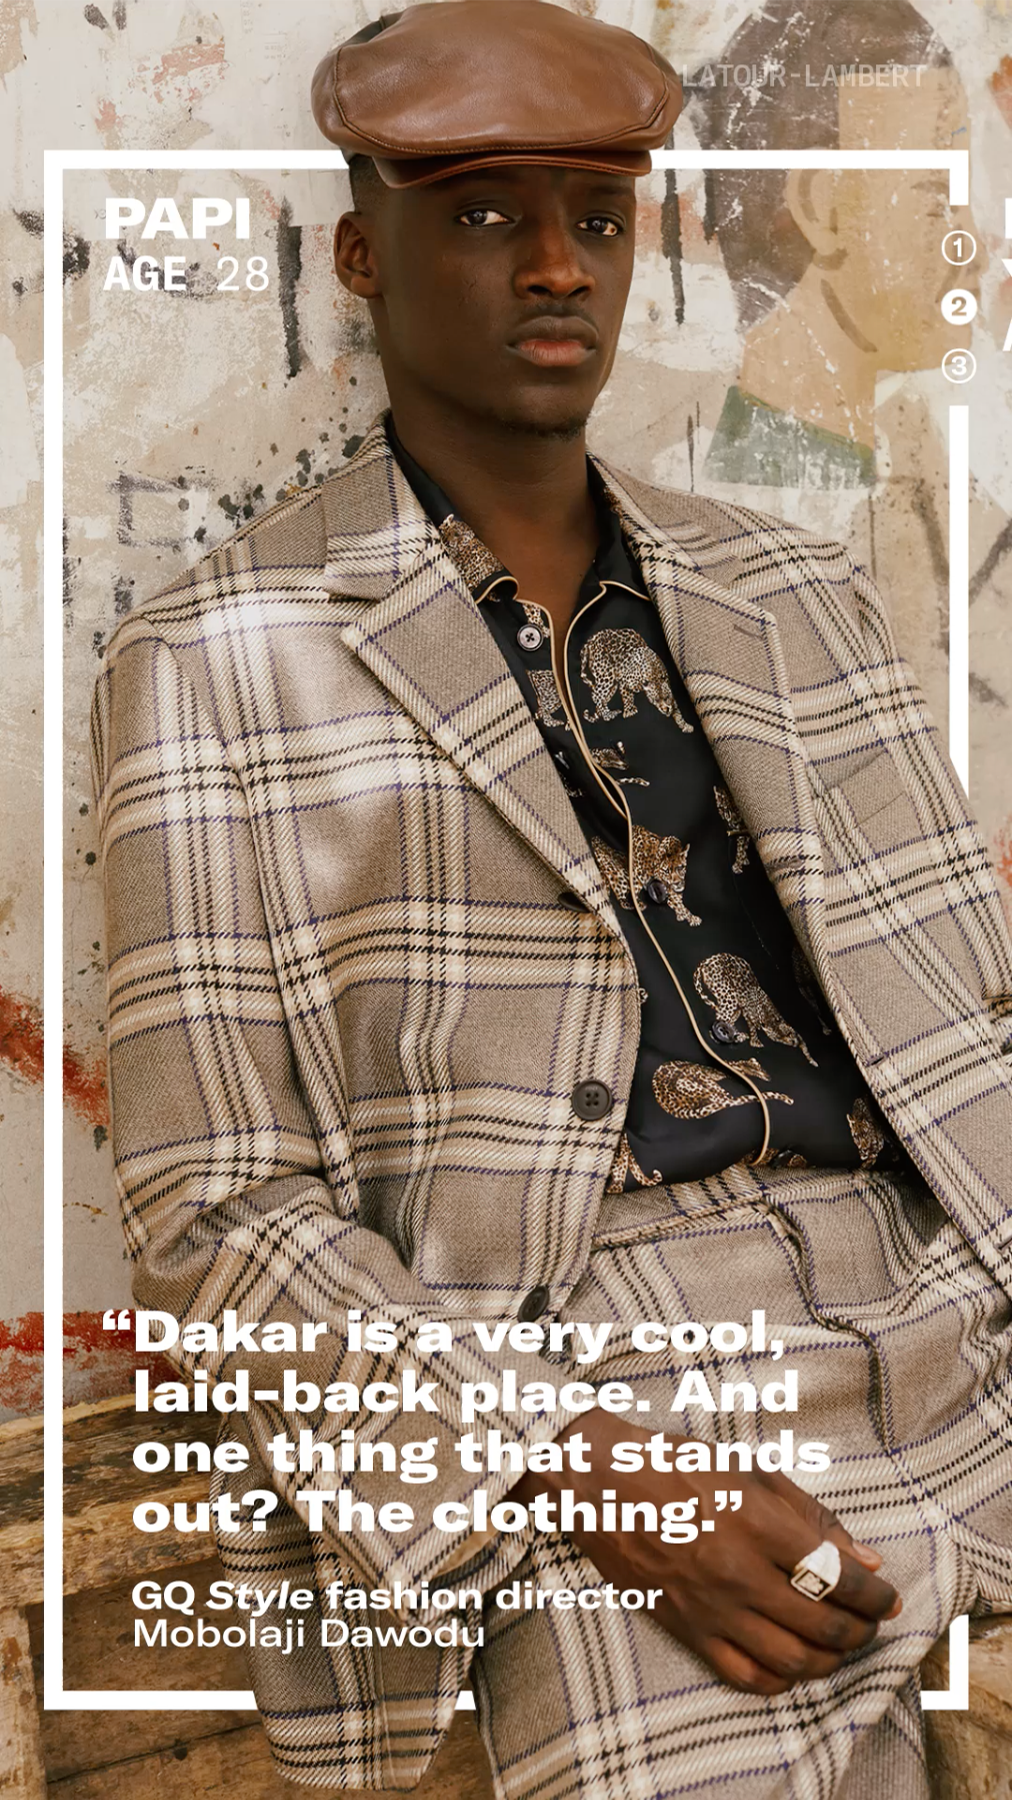 GQ Snapchat Discover - Shakeil Greeley